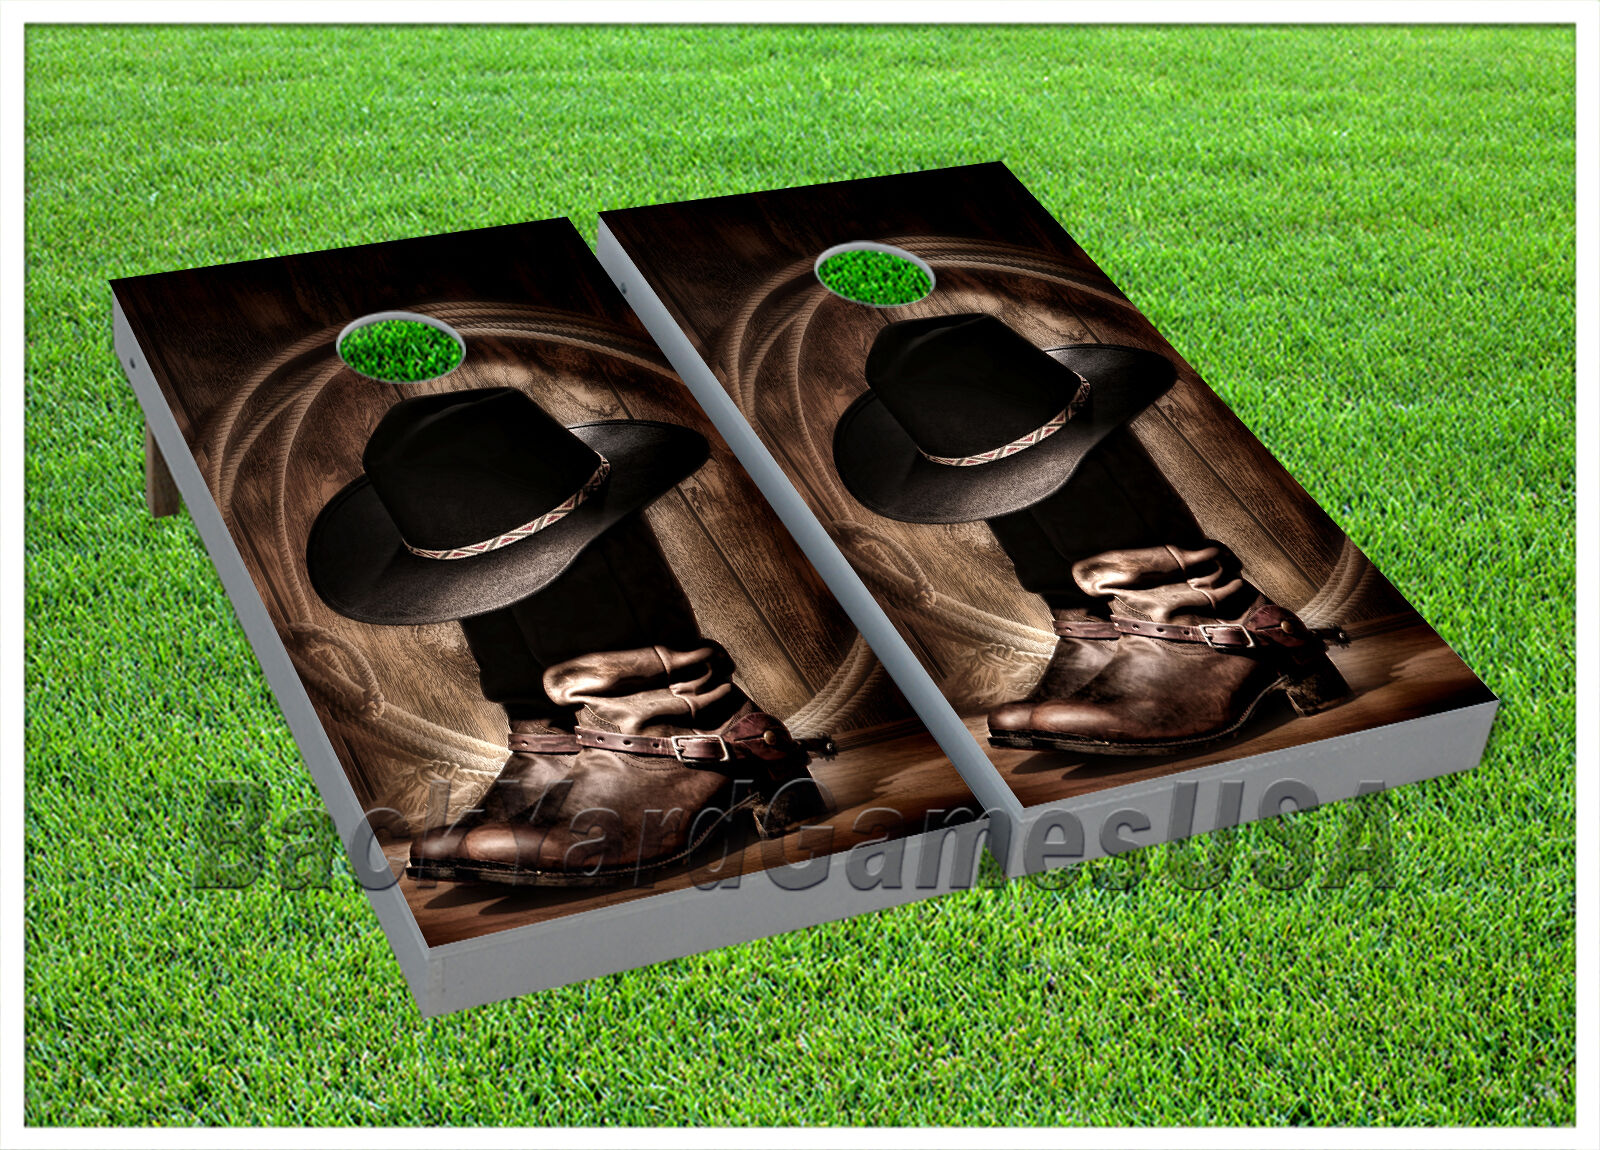 CORNHOLE BEANBAG TOSS GAME w Bags Game Boards Cowboy Boots West Country Set 928